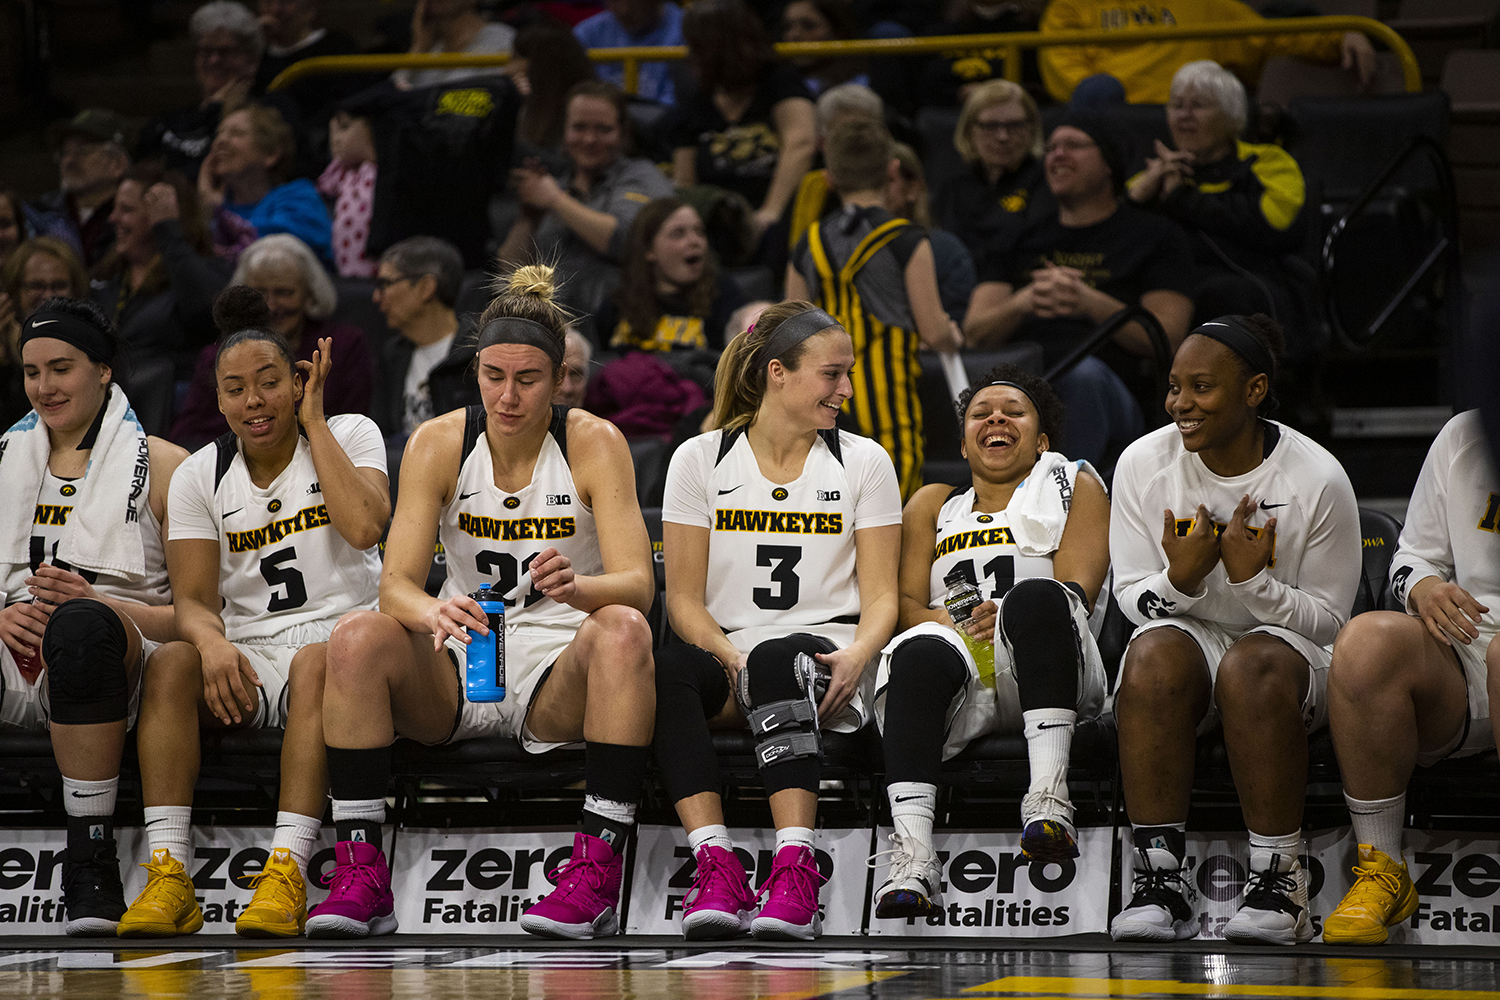 Iowa+players+react+to+a+video+of+them+singing+%22I+Will+Always+Love+You%22+by+Whitney+Houston+being+shown+on+the+big+screen+during+the+Iowa%2FIllinois+women%27s+basketball+game+at+Carver-Hawkeye+Arena+on+Thursday%2C+February+14%2C+2019.+The+Hawkeyes+defeated+the+Fighting+Illini%2C+88-66.+